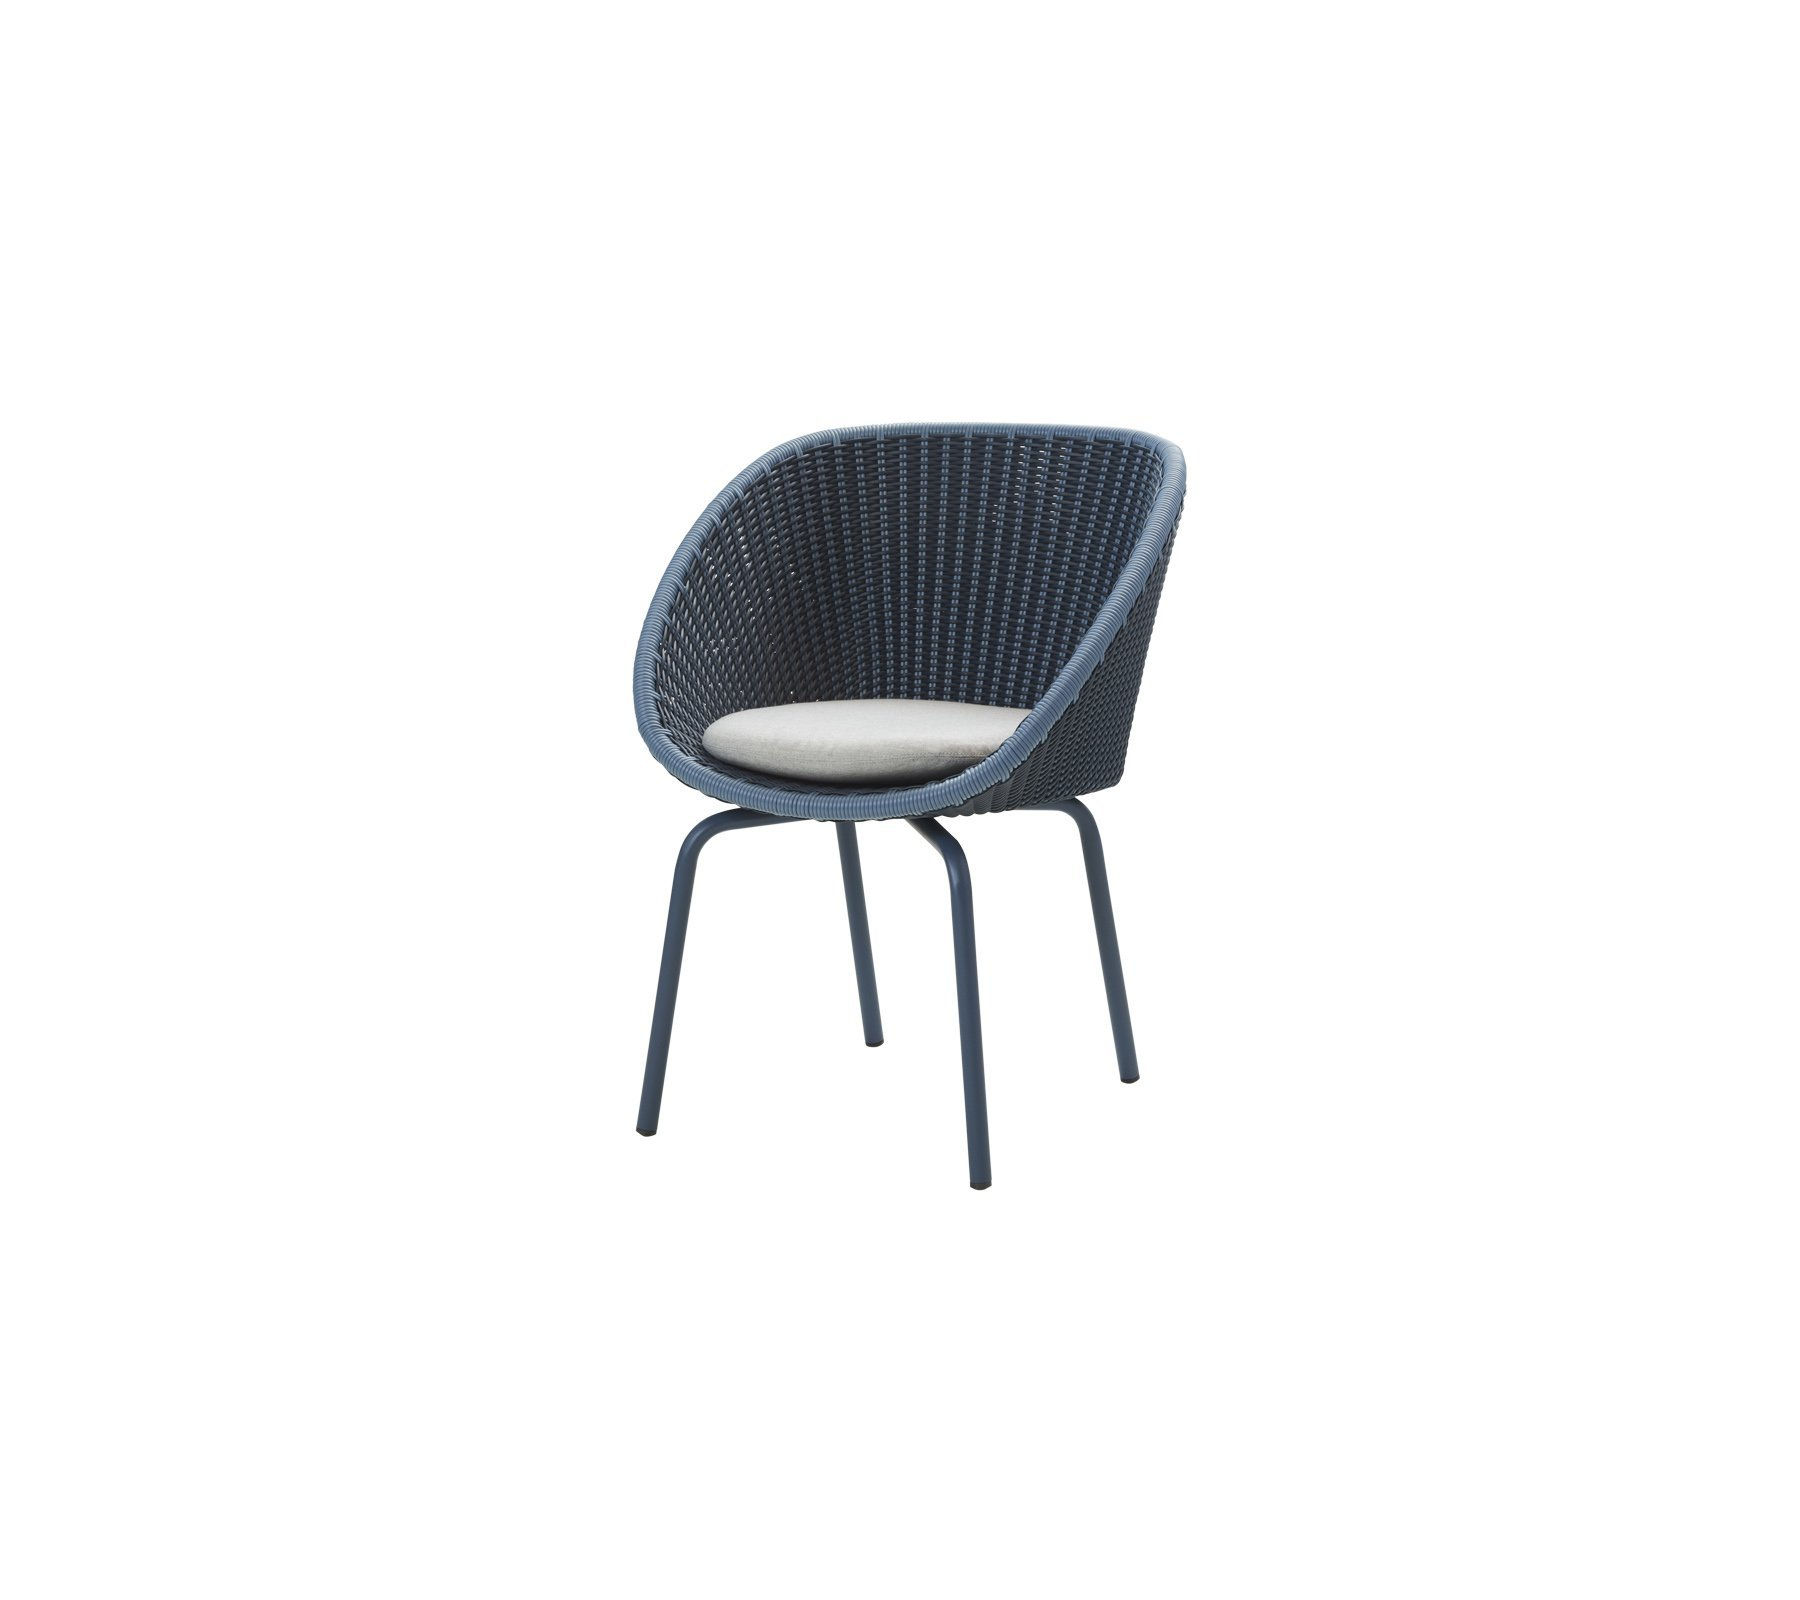 Peacock Chair from Cane-line